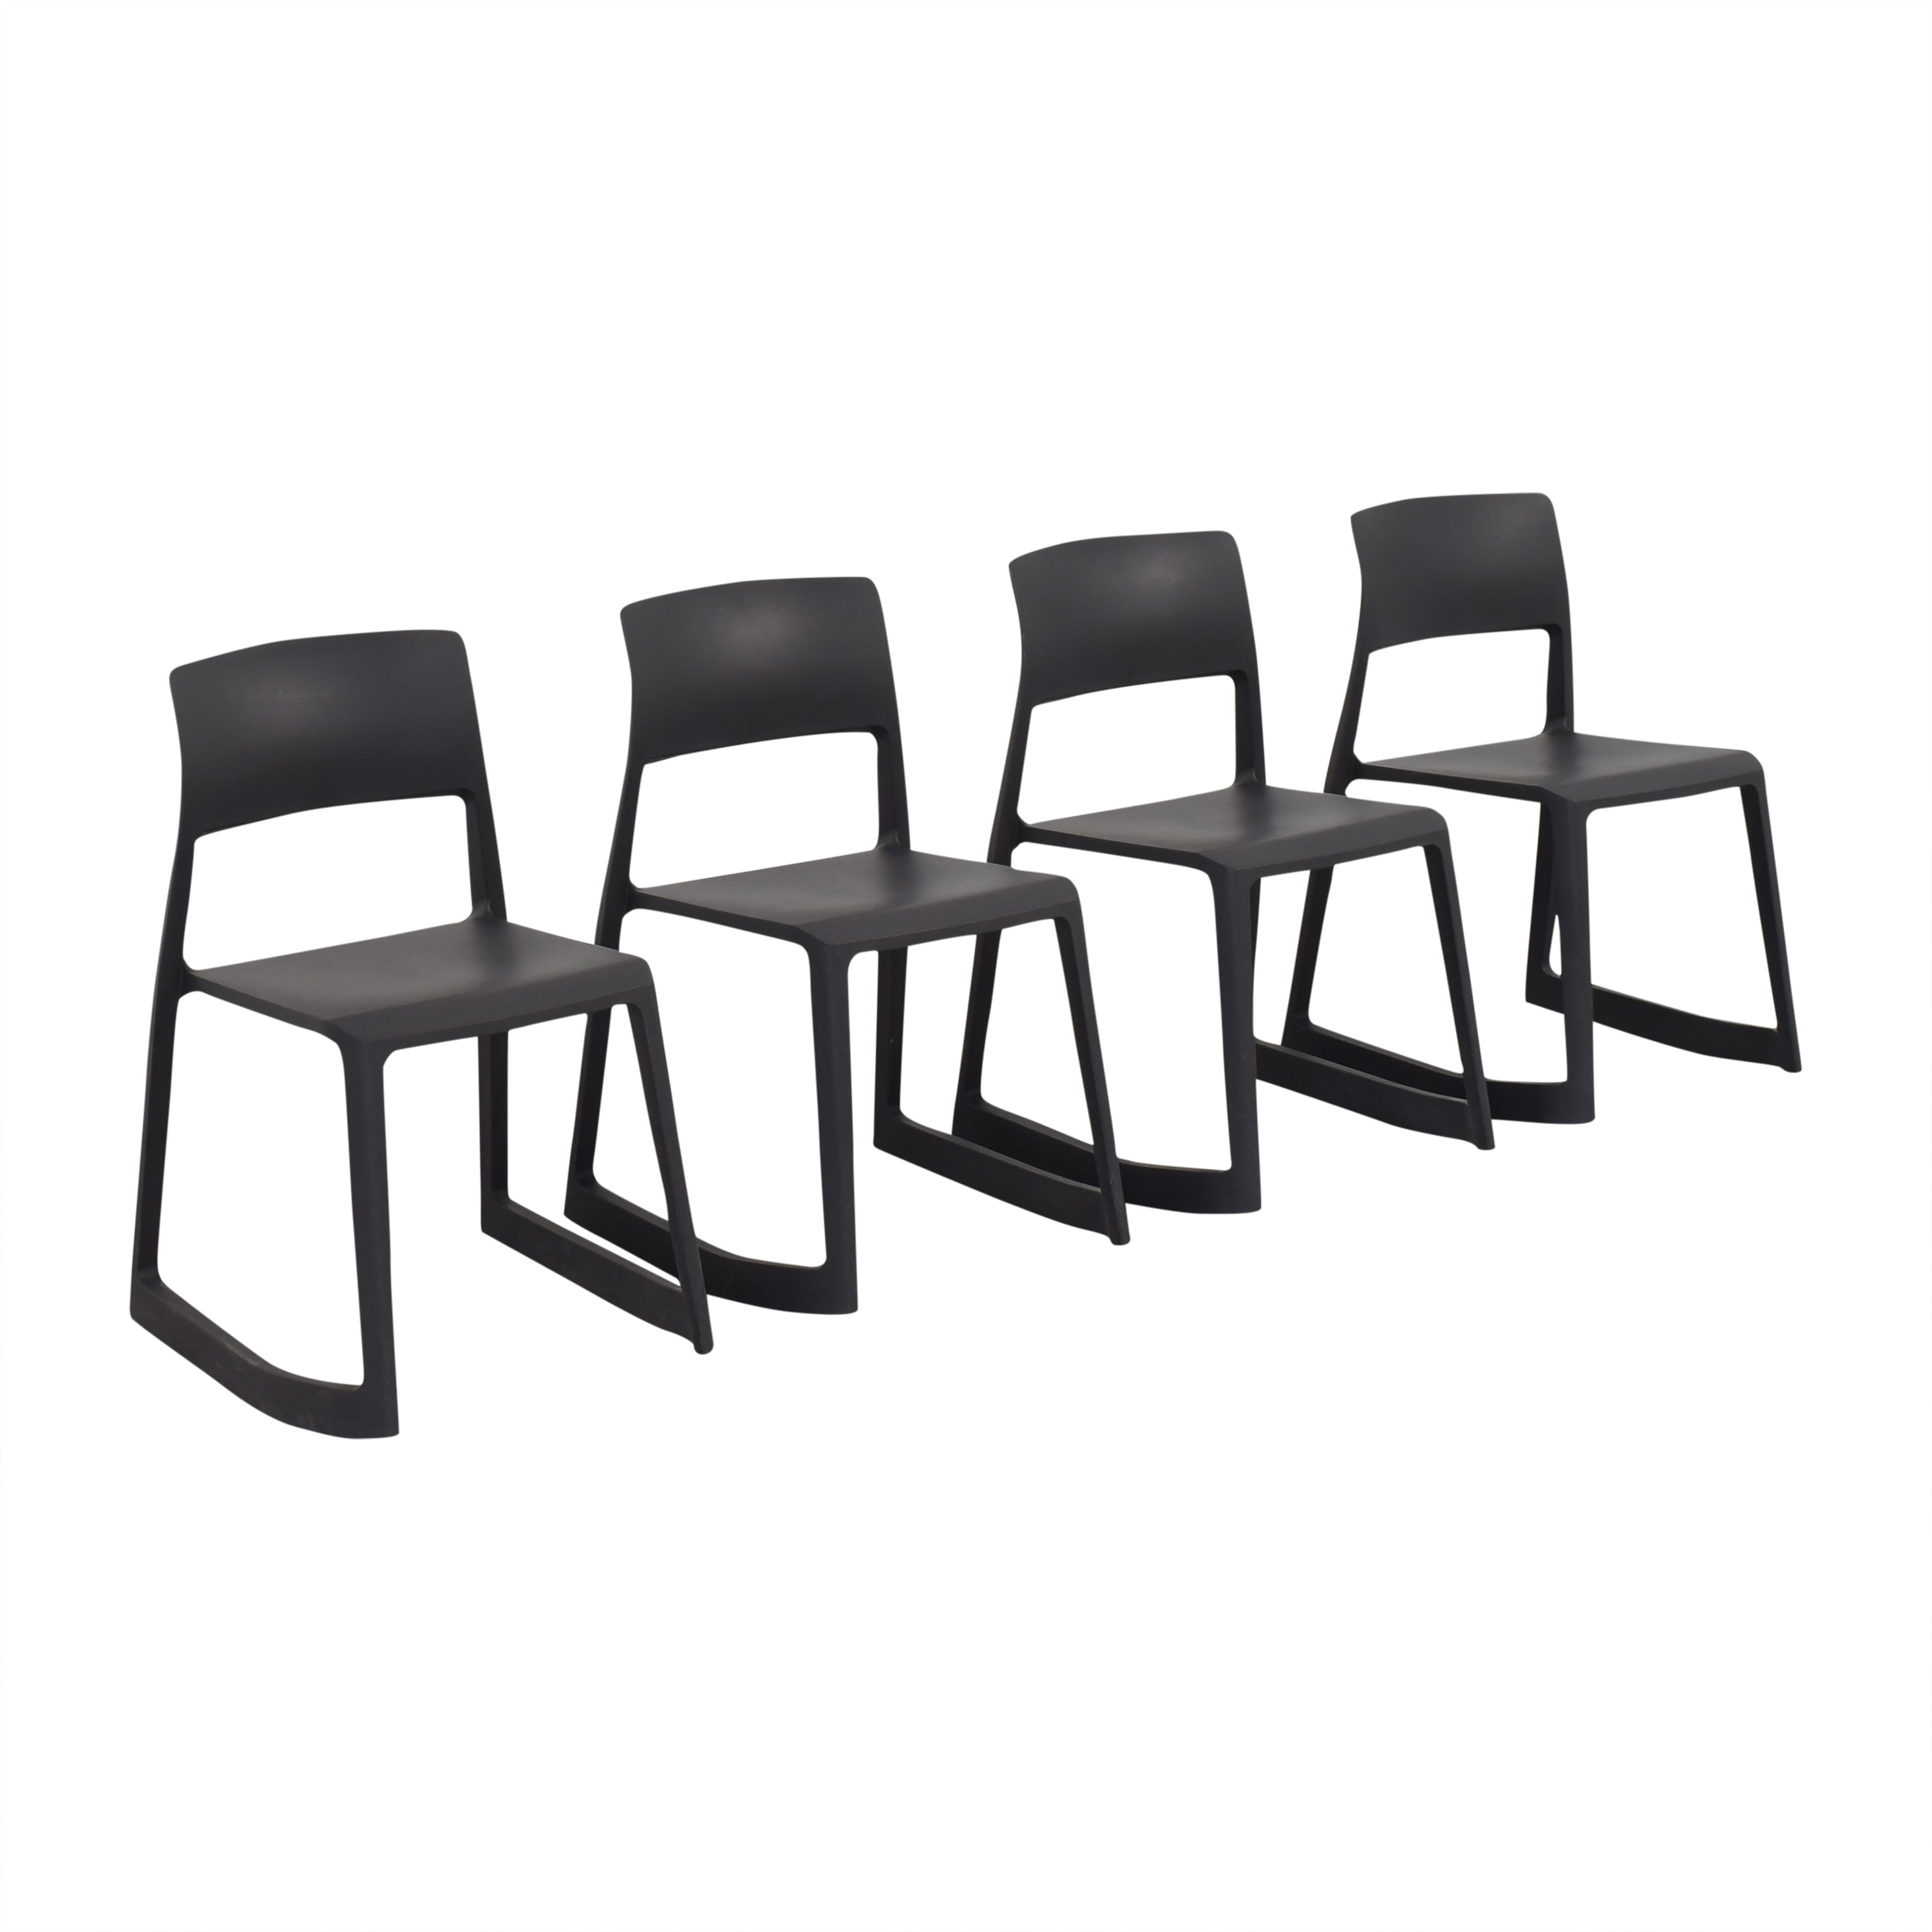 shop Vitra Vitra Tip Ton Chairs online